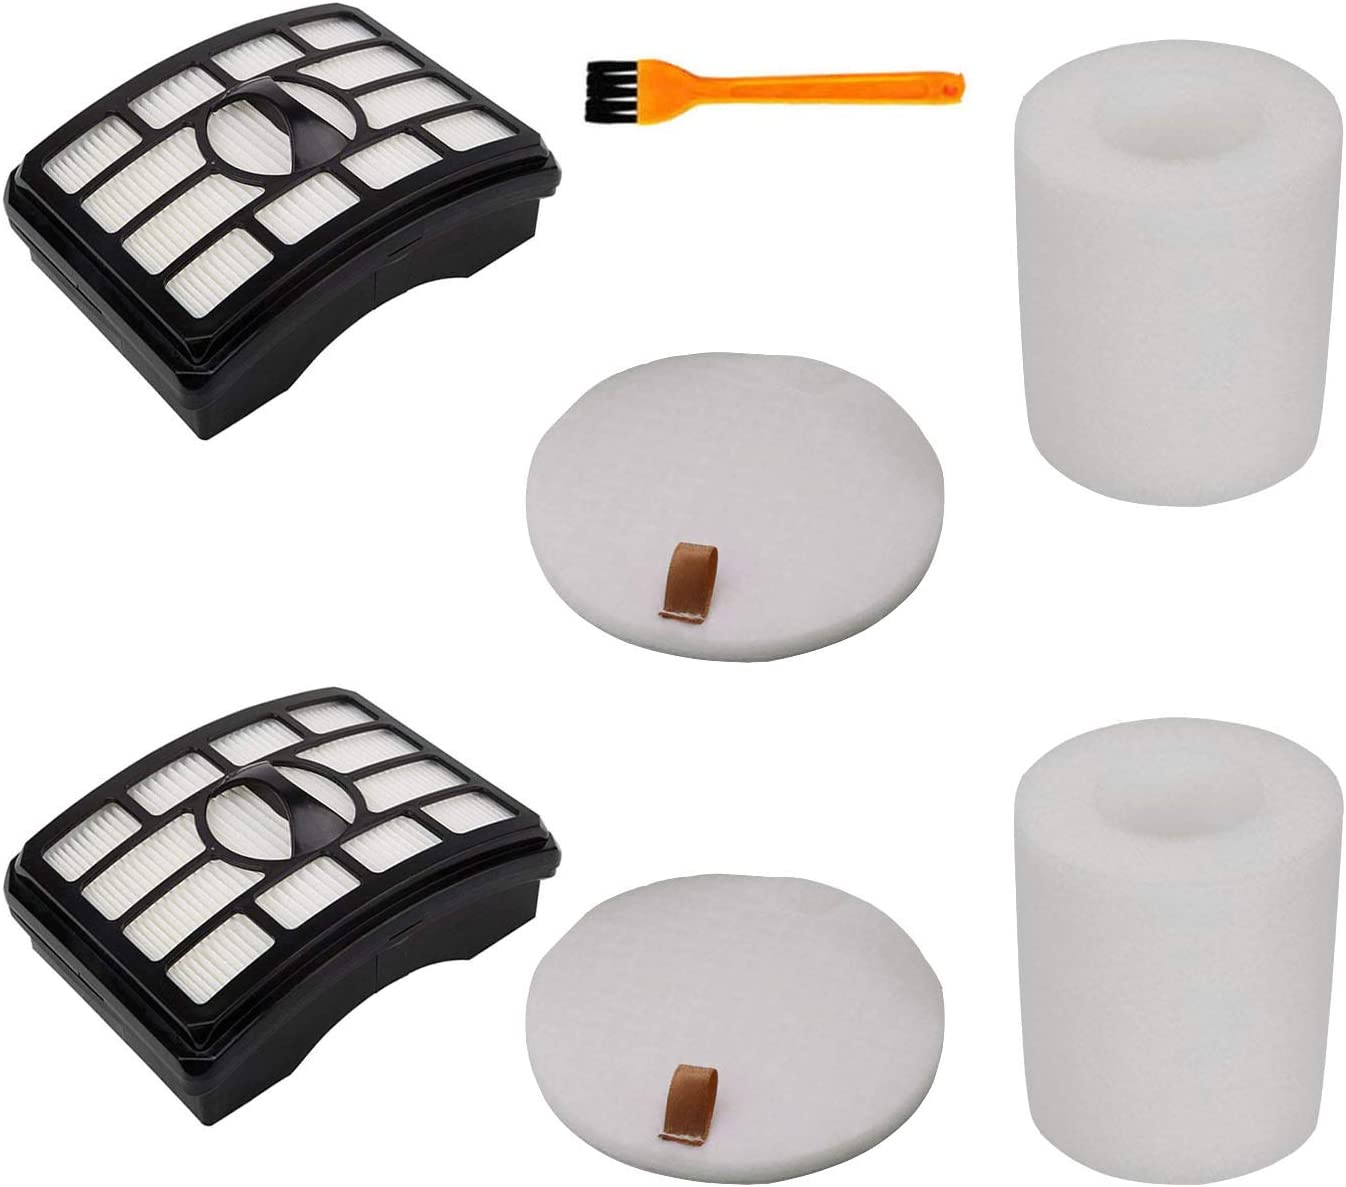 h Life Filters Kit for Shark Rotator Pro Lift-Away NV502 NV552 UV560 NV510 Vacuum Replace Shark Filters Accessories Part XFF500 & XHF500